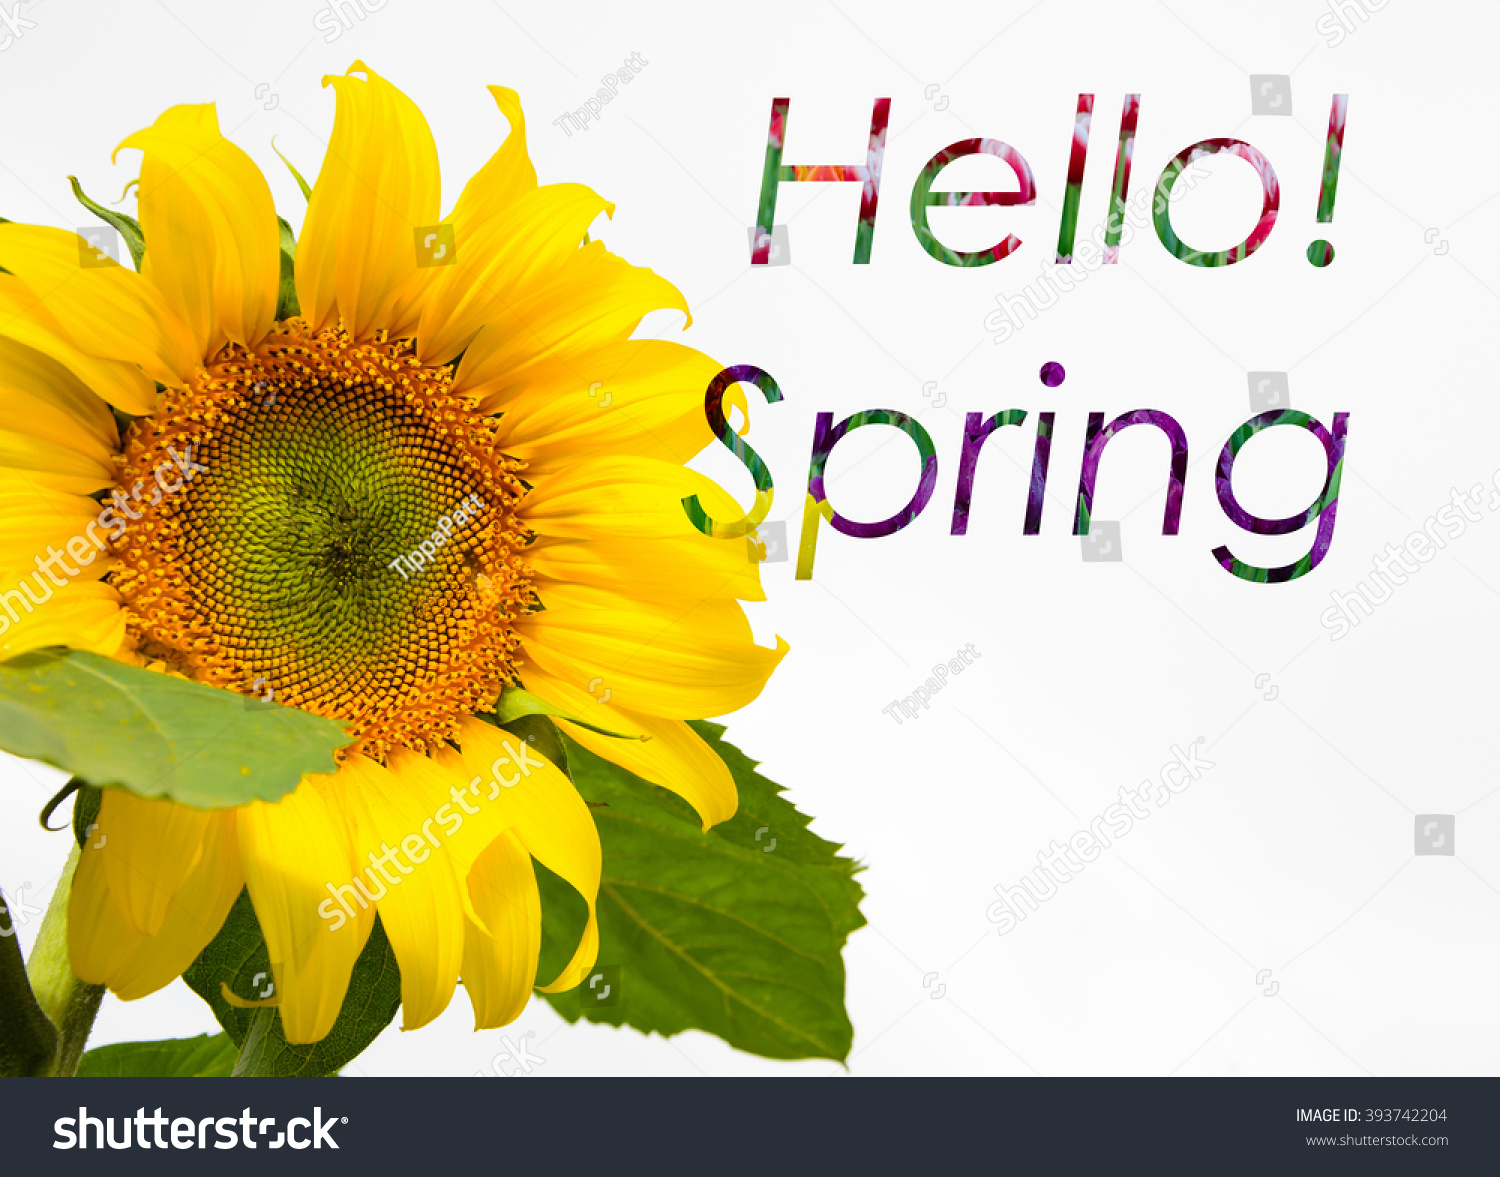 Spring Quote On Sunflower Background Colorful Stock Photo Edit Now 393742204